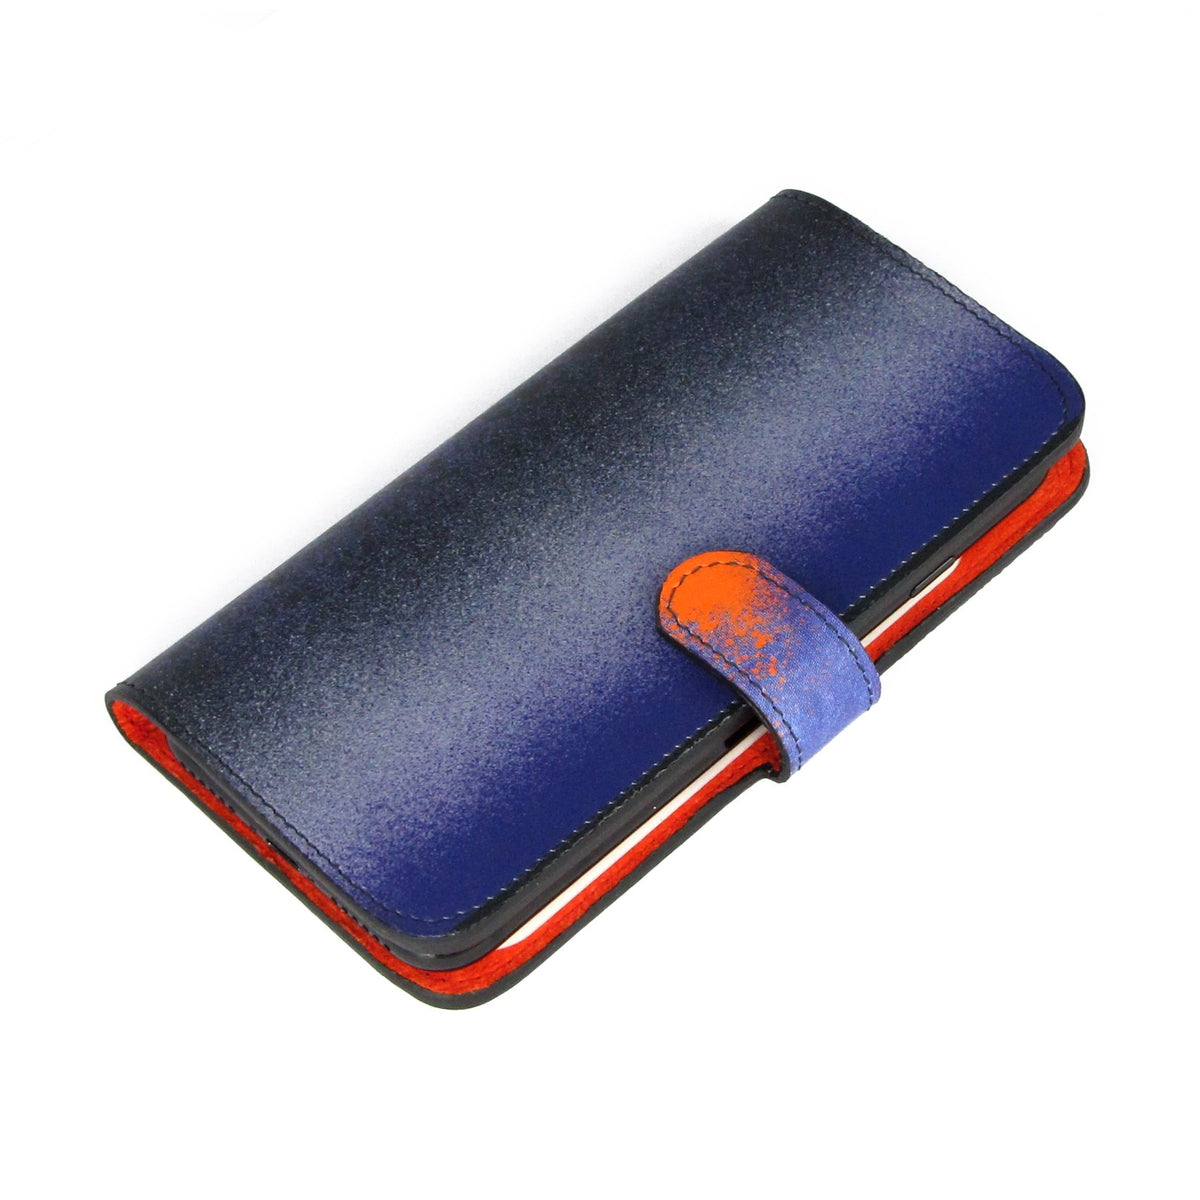 Phone case with card holder - iphone x leather case - Blue leather flip phone case - 100% leather folio with wallet pocket - Magnetic folio case - Blue and Orange - Samsung s10e folio -